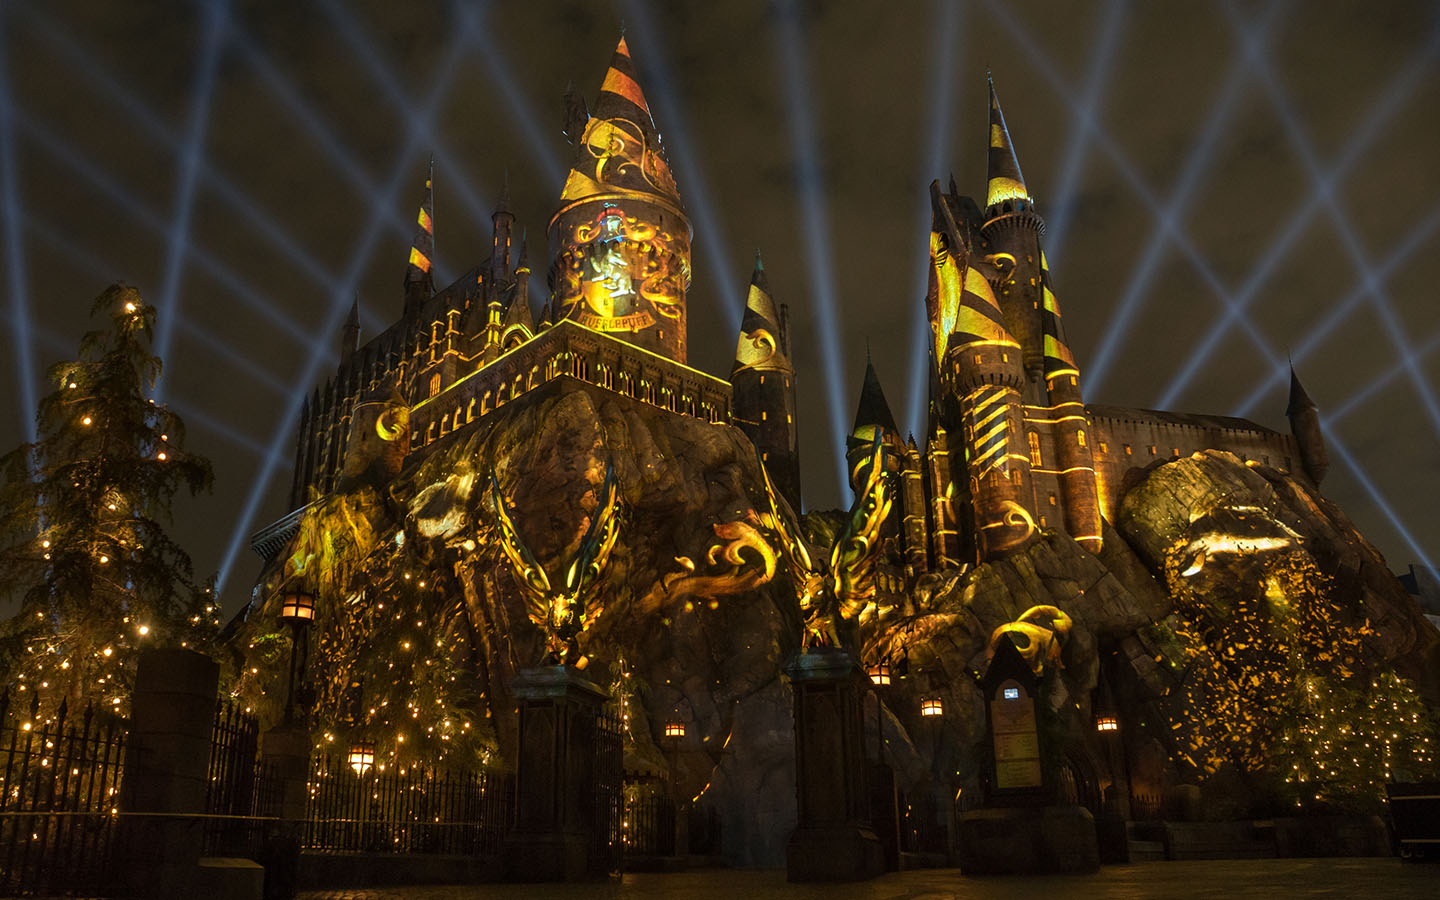 EXPERIENCE THE NIGHTTIME LIGHTS AT HOGWARTS CASTLE IN THE WIZARDING WORLD OF HARRY POTTER